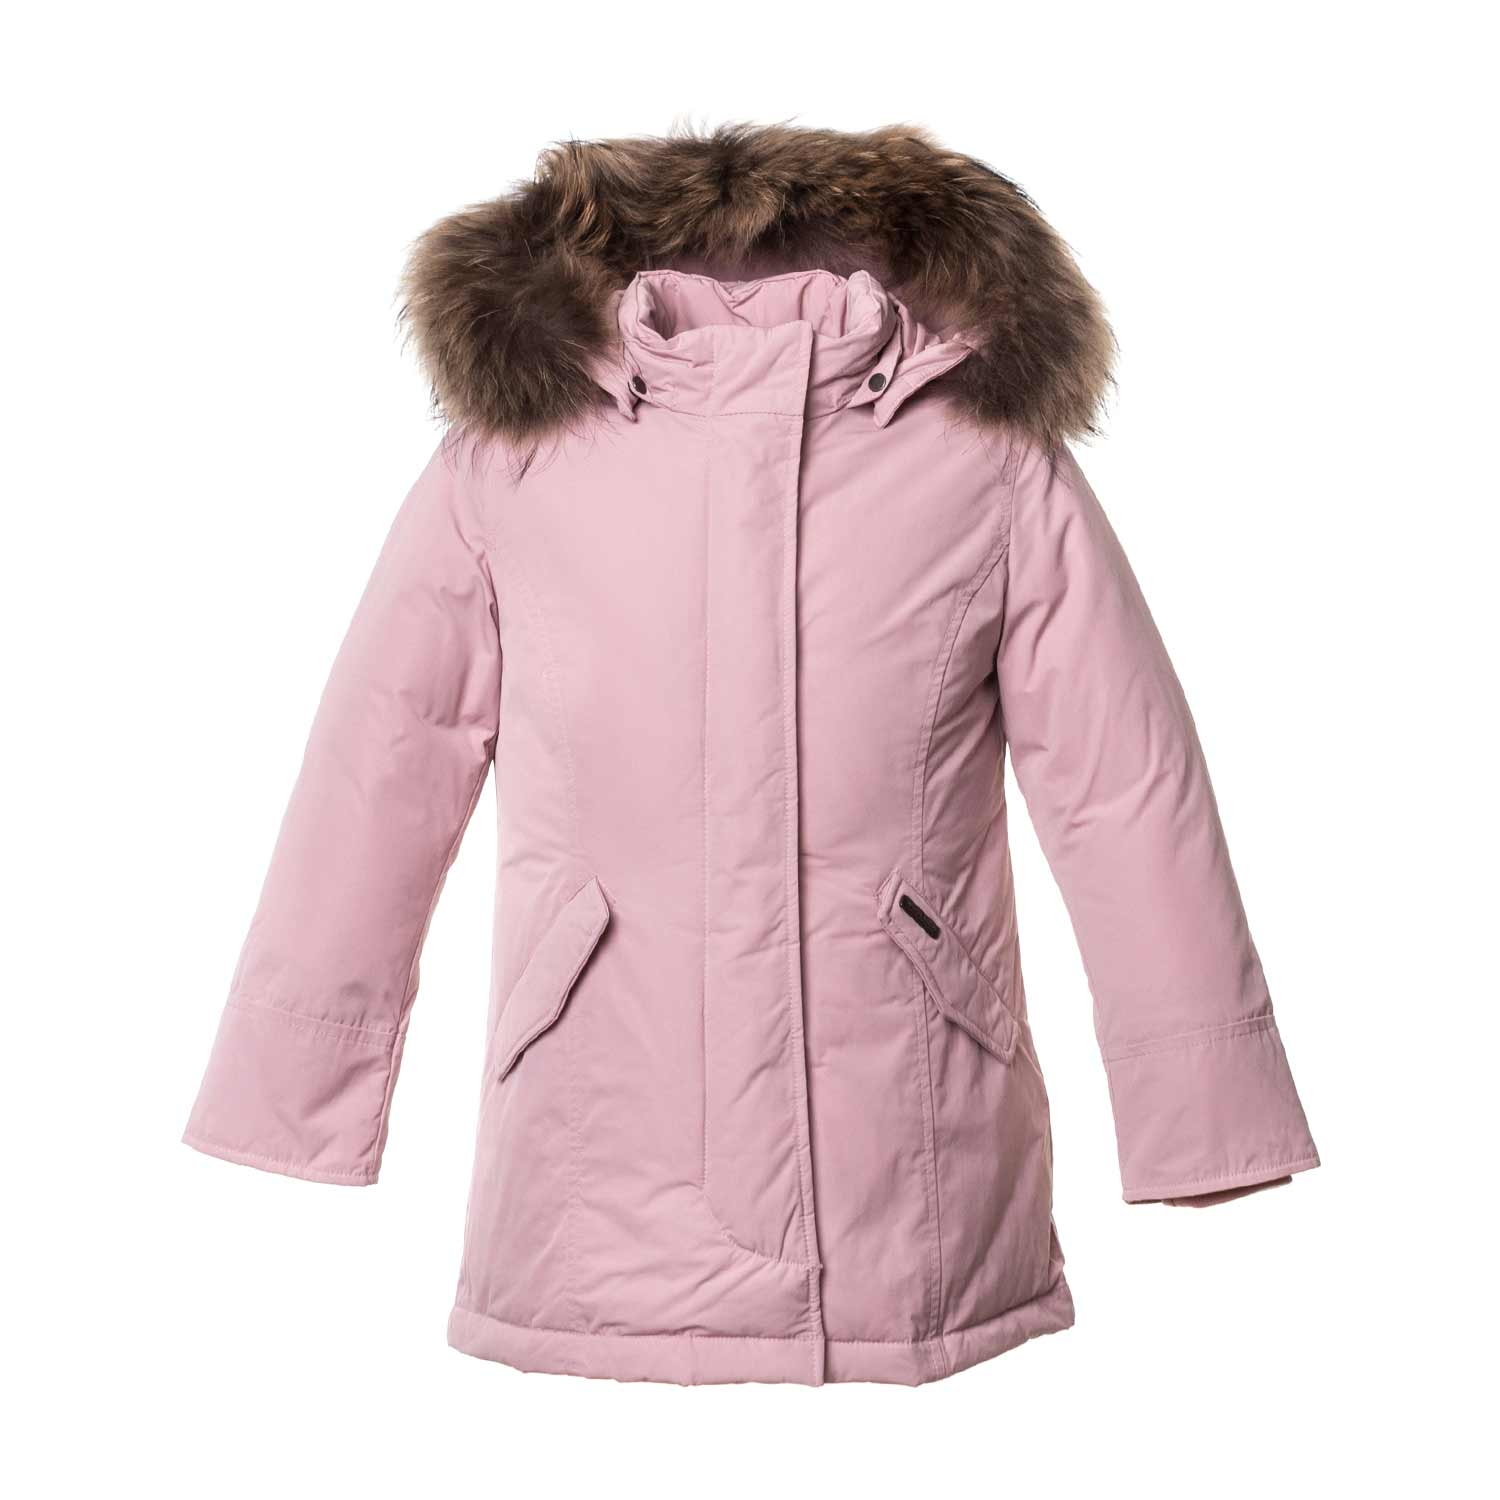 ea74c59b3 Woolrich - Pink Artic Parka For Girls - annameglio.com shop online